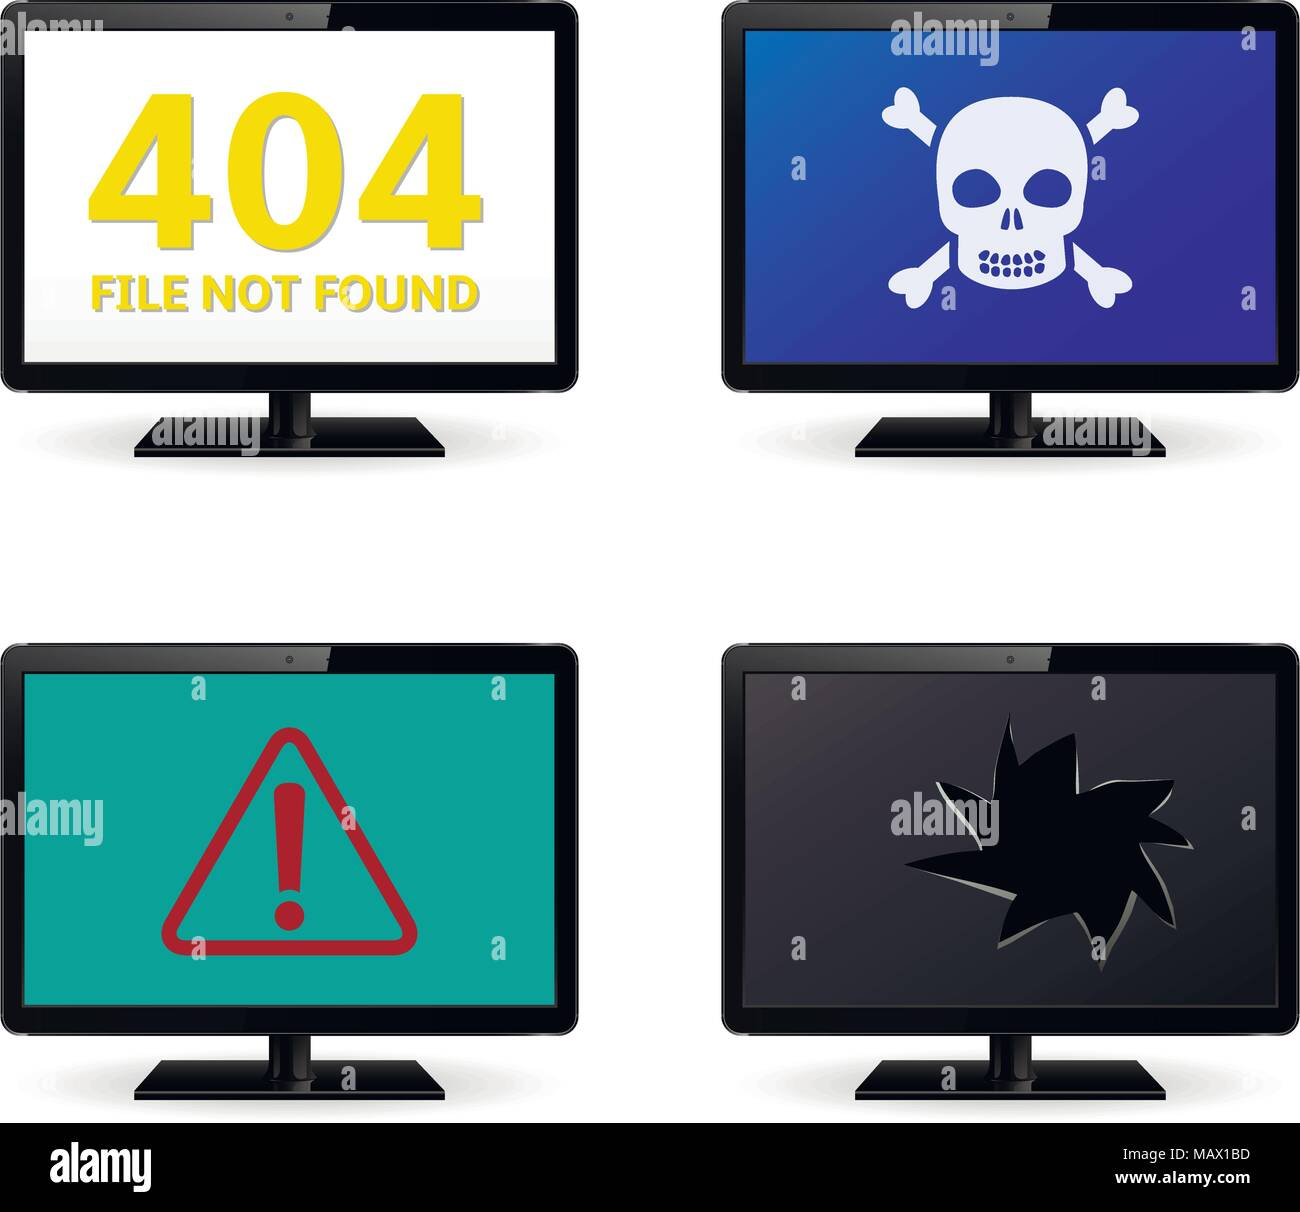 Computer crash, technical failure message on computer monitor screens - Stock Image